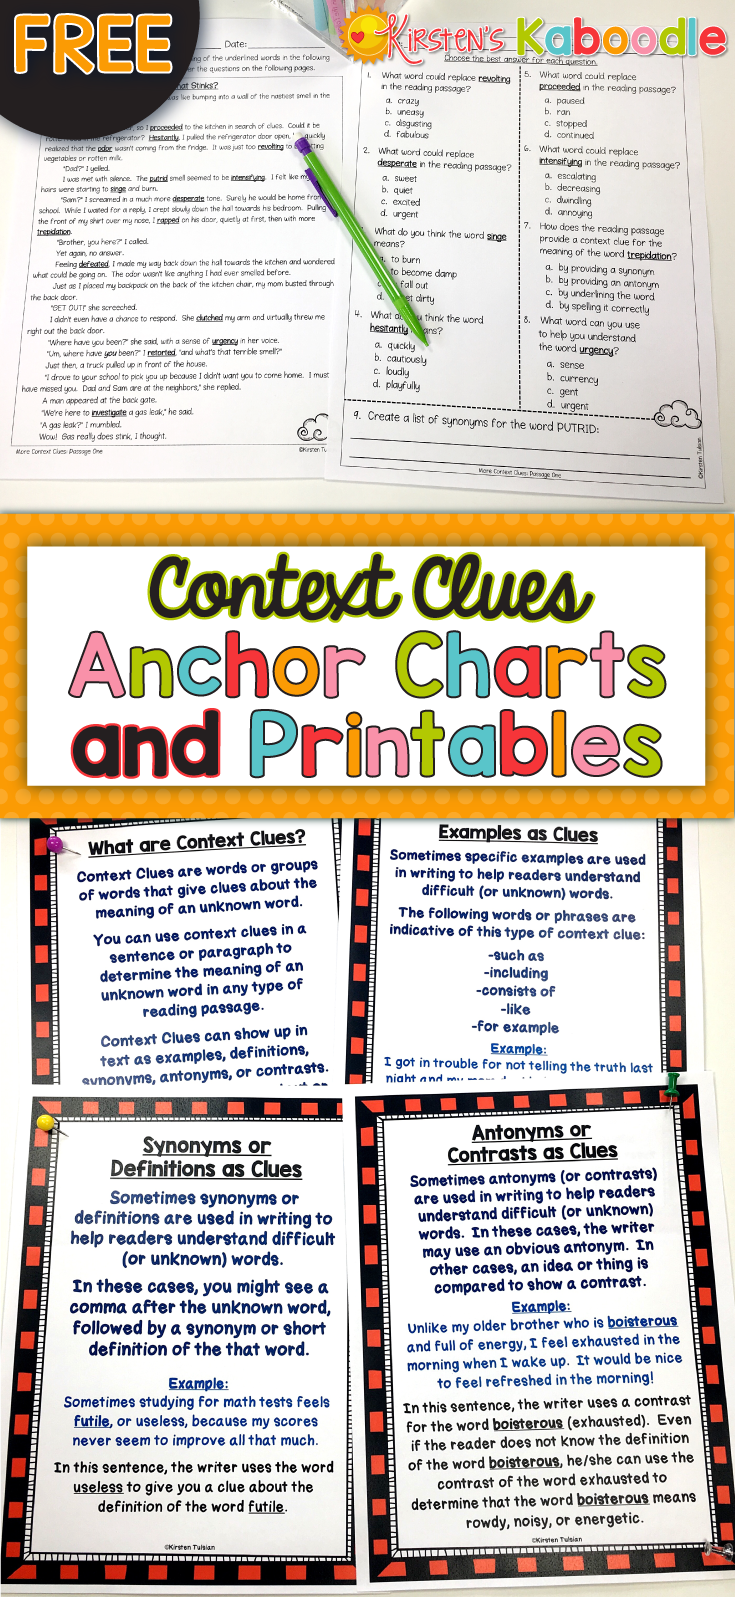 FREE! Are you teaching your students about context clues? This free ...